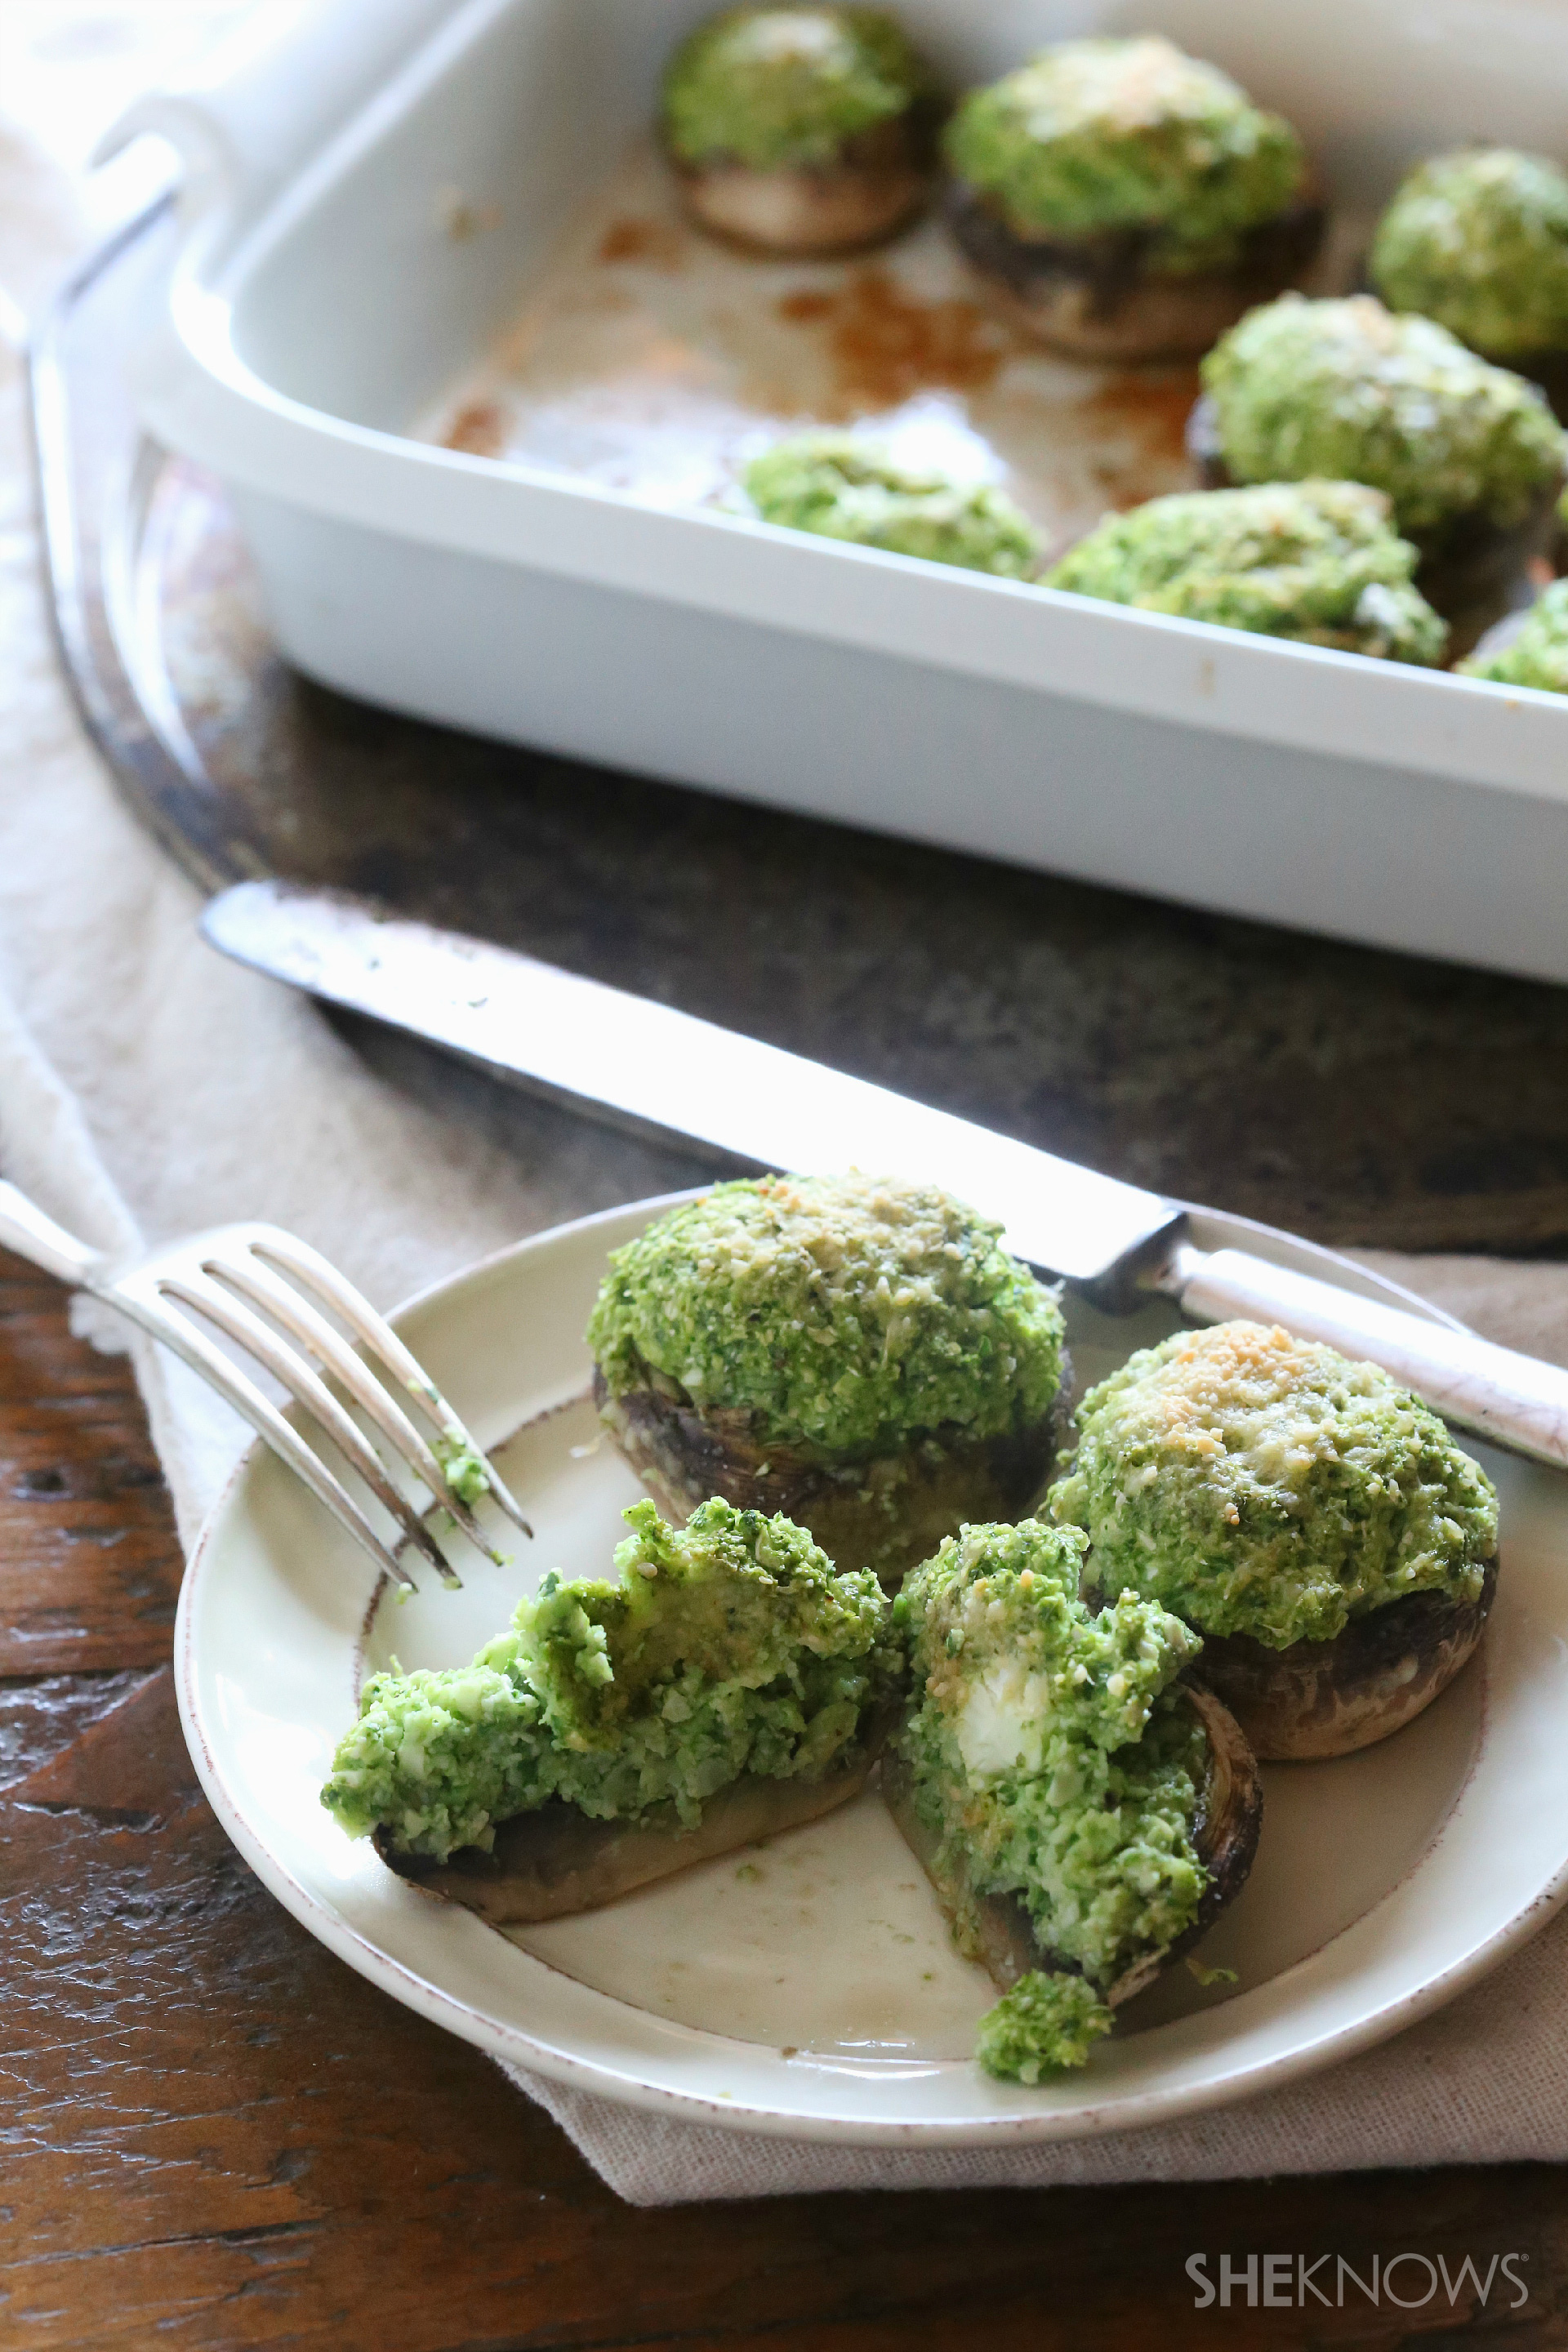 cauliflower-kale stuffed mushrooms